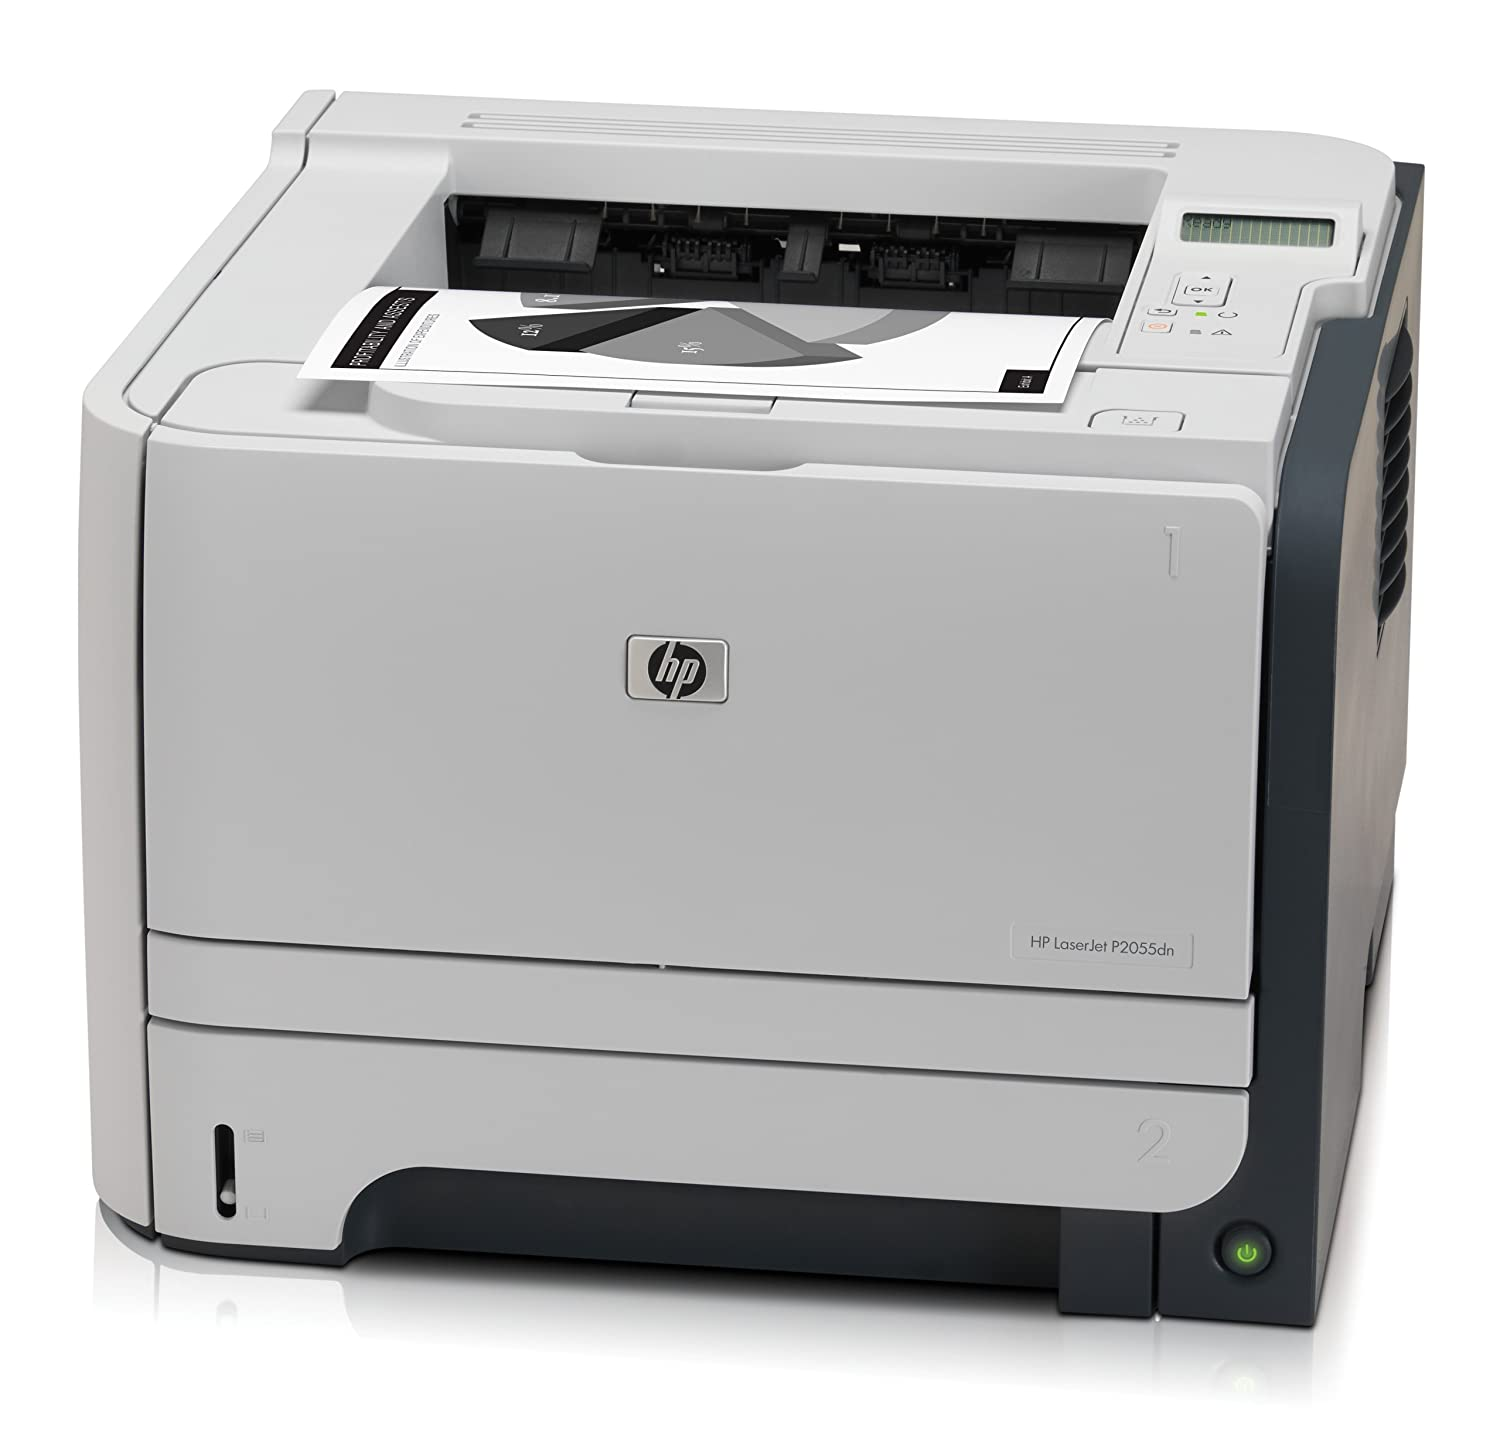 Hewlett Packard [HP] LaserJet P2055DN Mono Laser Printer Ref CE459A:  Amazon.co.uk: Computers & Accessories